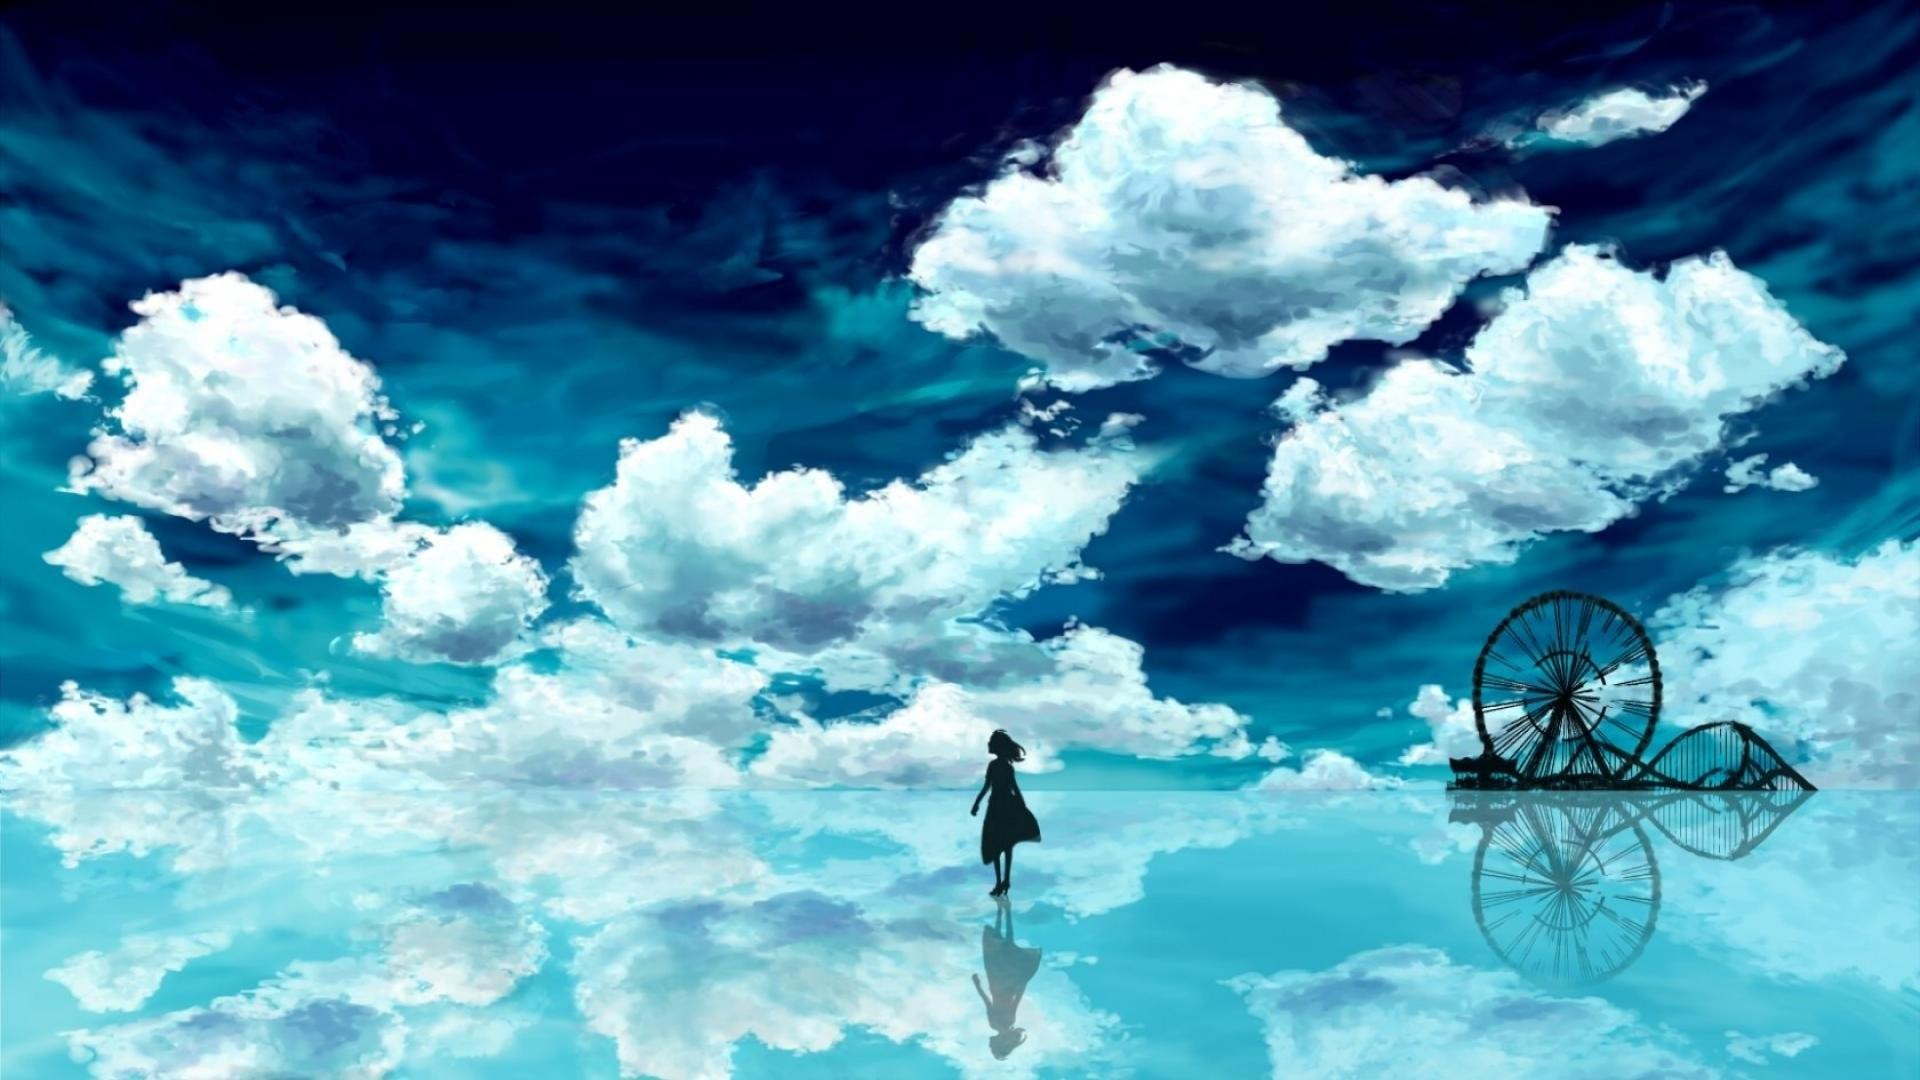 Sky Anime Wallpapers Wallpaper Cave